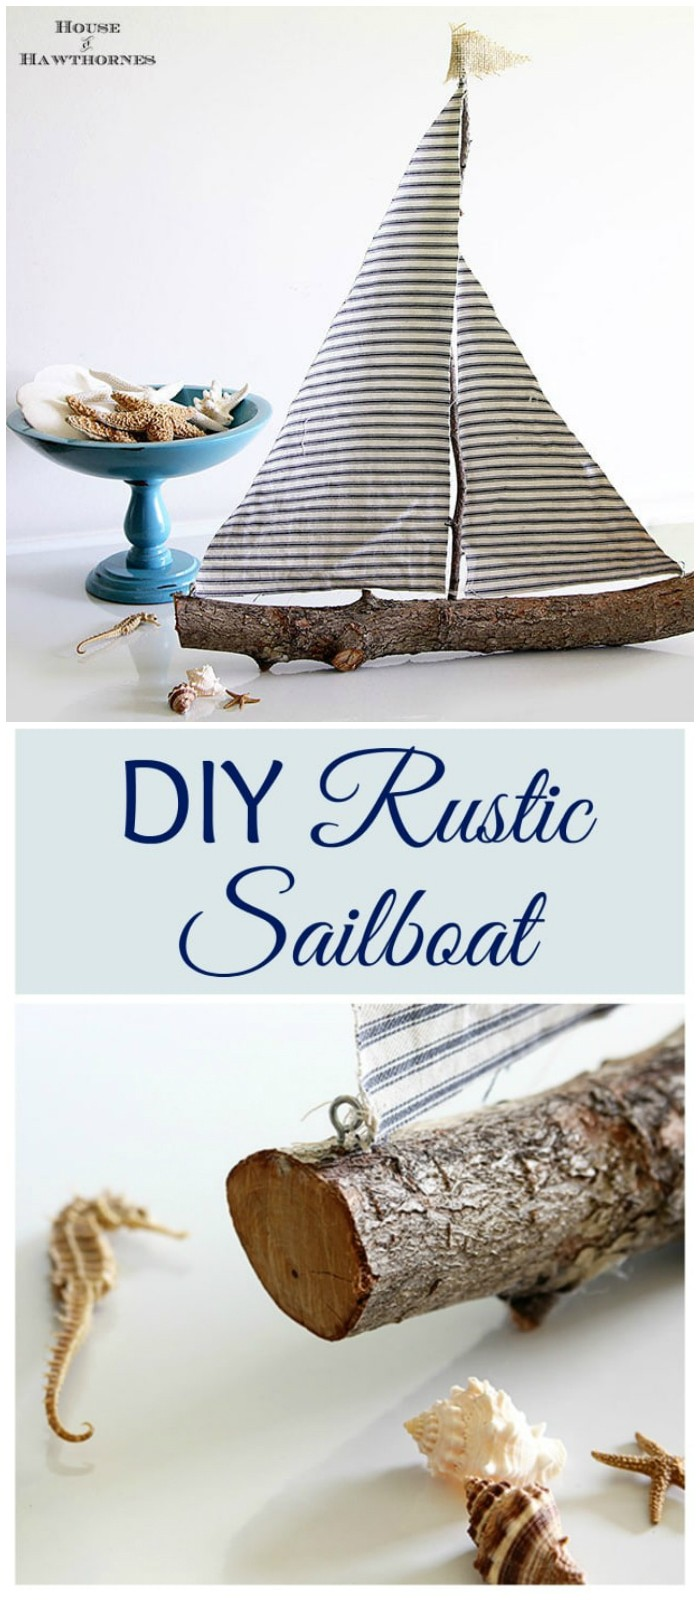 DIY Rustic Sailboat